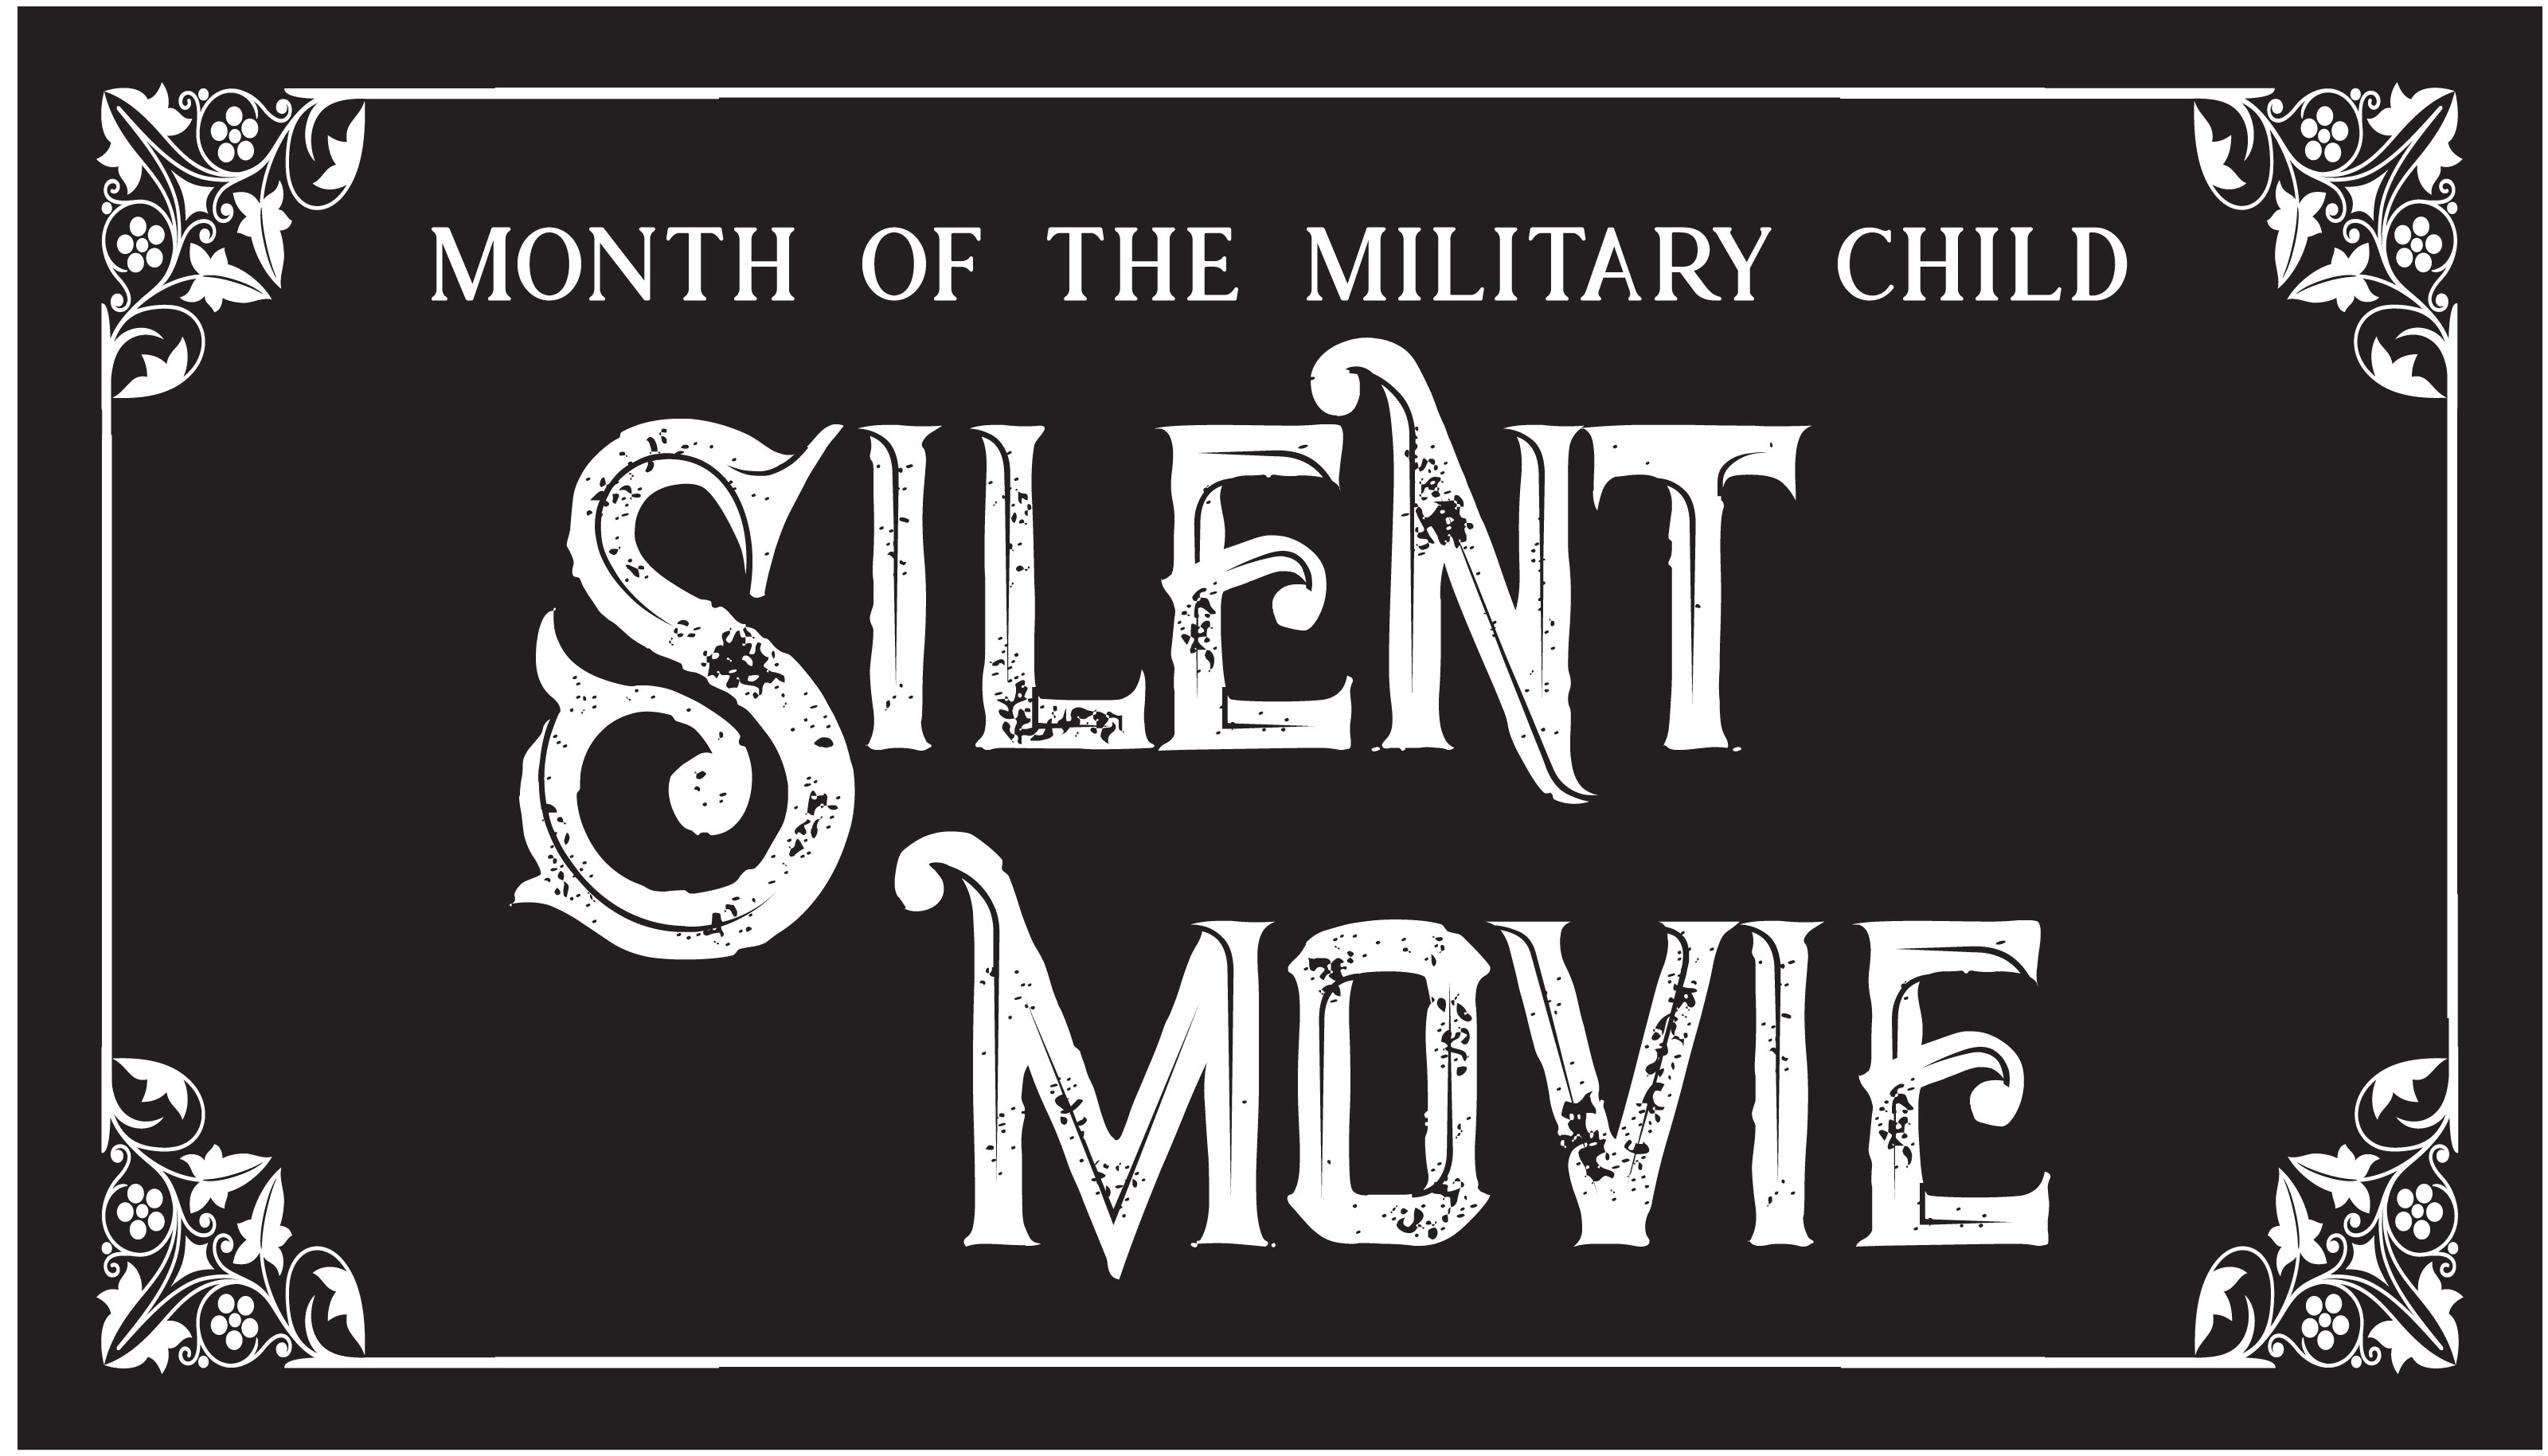 Save the Date: Month of the Military Child Celebration - Act out a Silent Movie